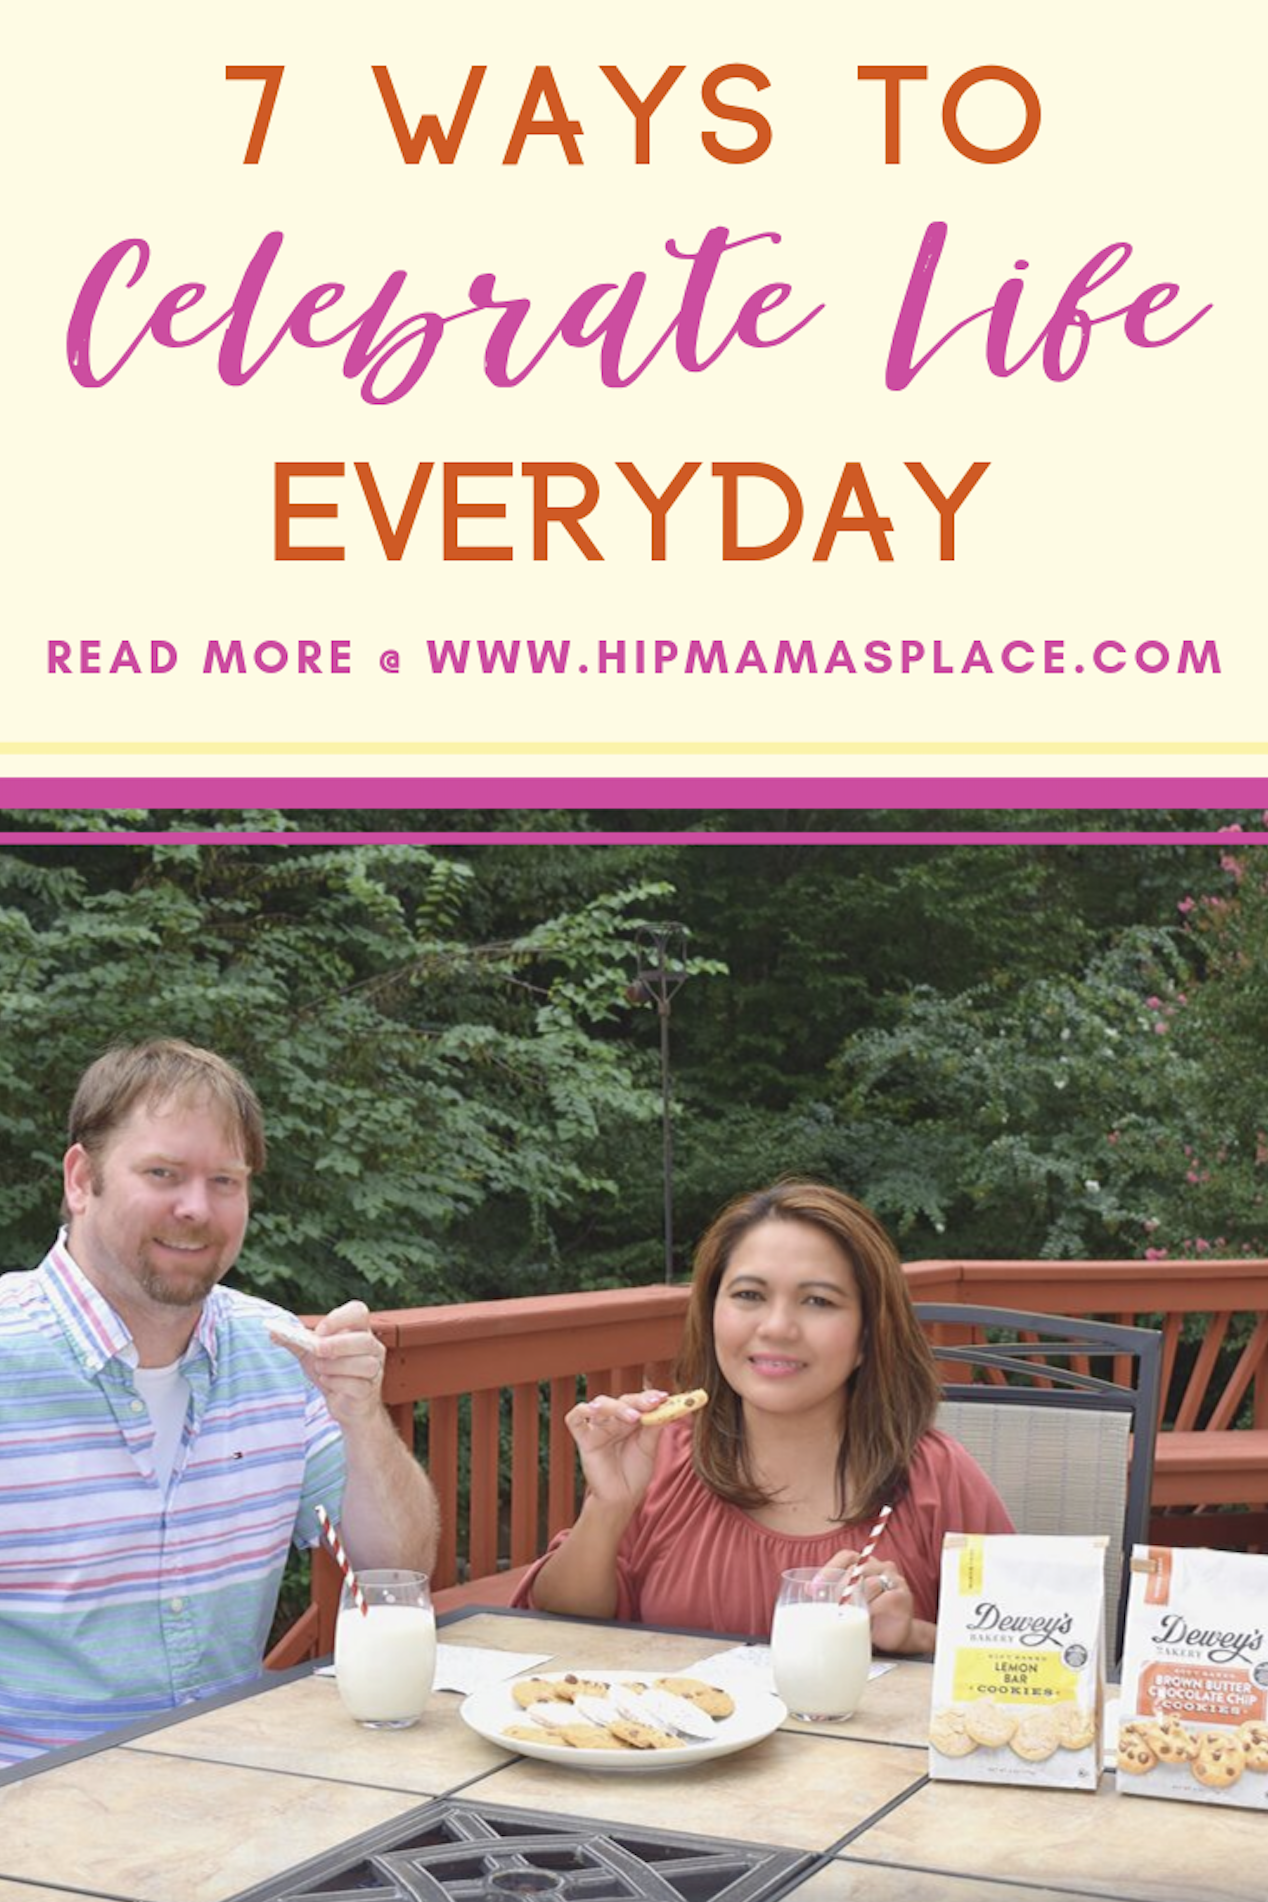 Choose to be grateful for the little things in life to have a much brighter and more positive future. Here are 7 ways to celebrate life everyday! #ad #sponsored #happiness #lifelessons #lifehacks #MySouthernBakery